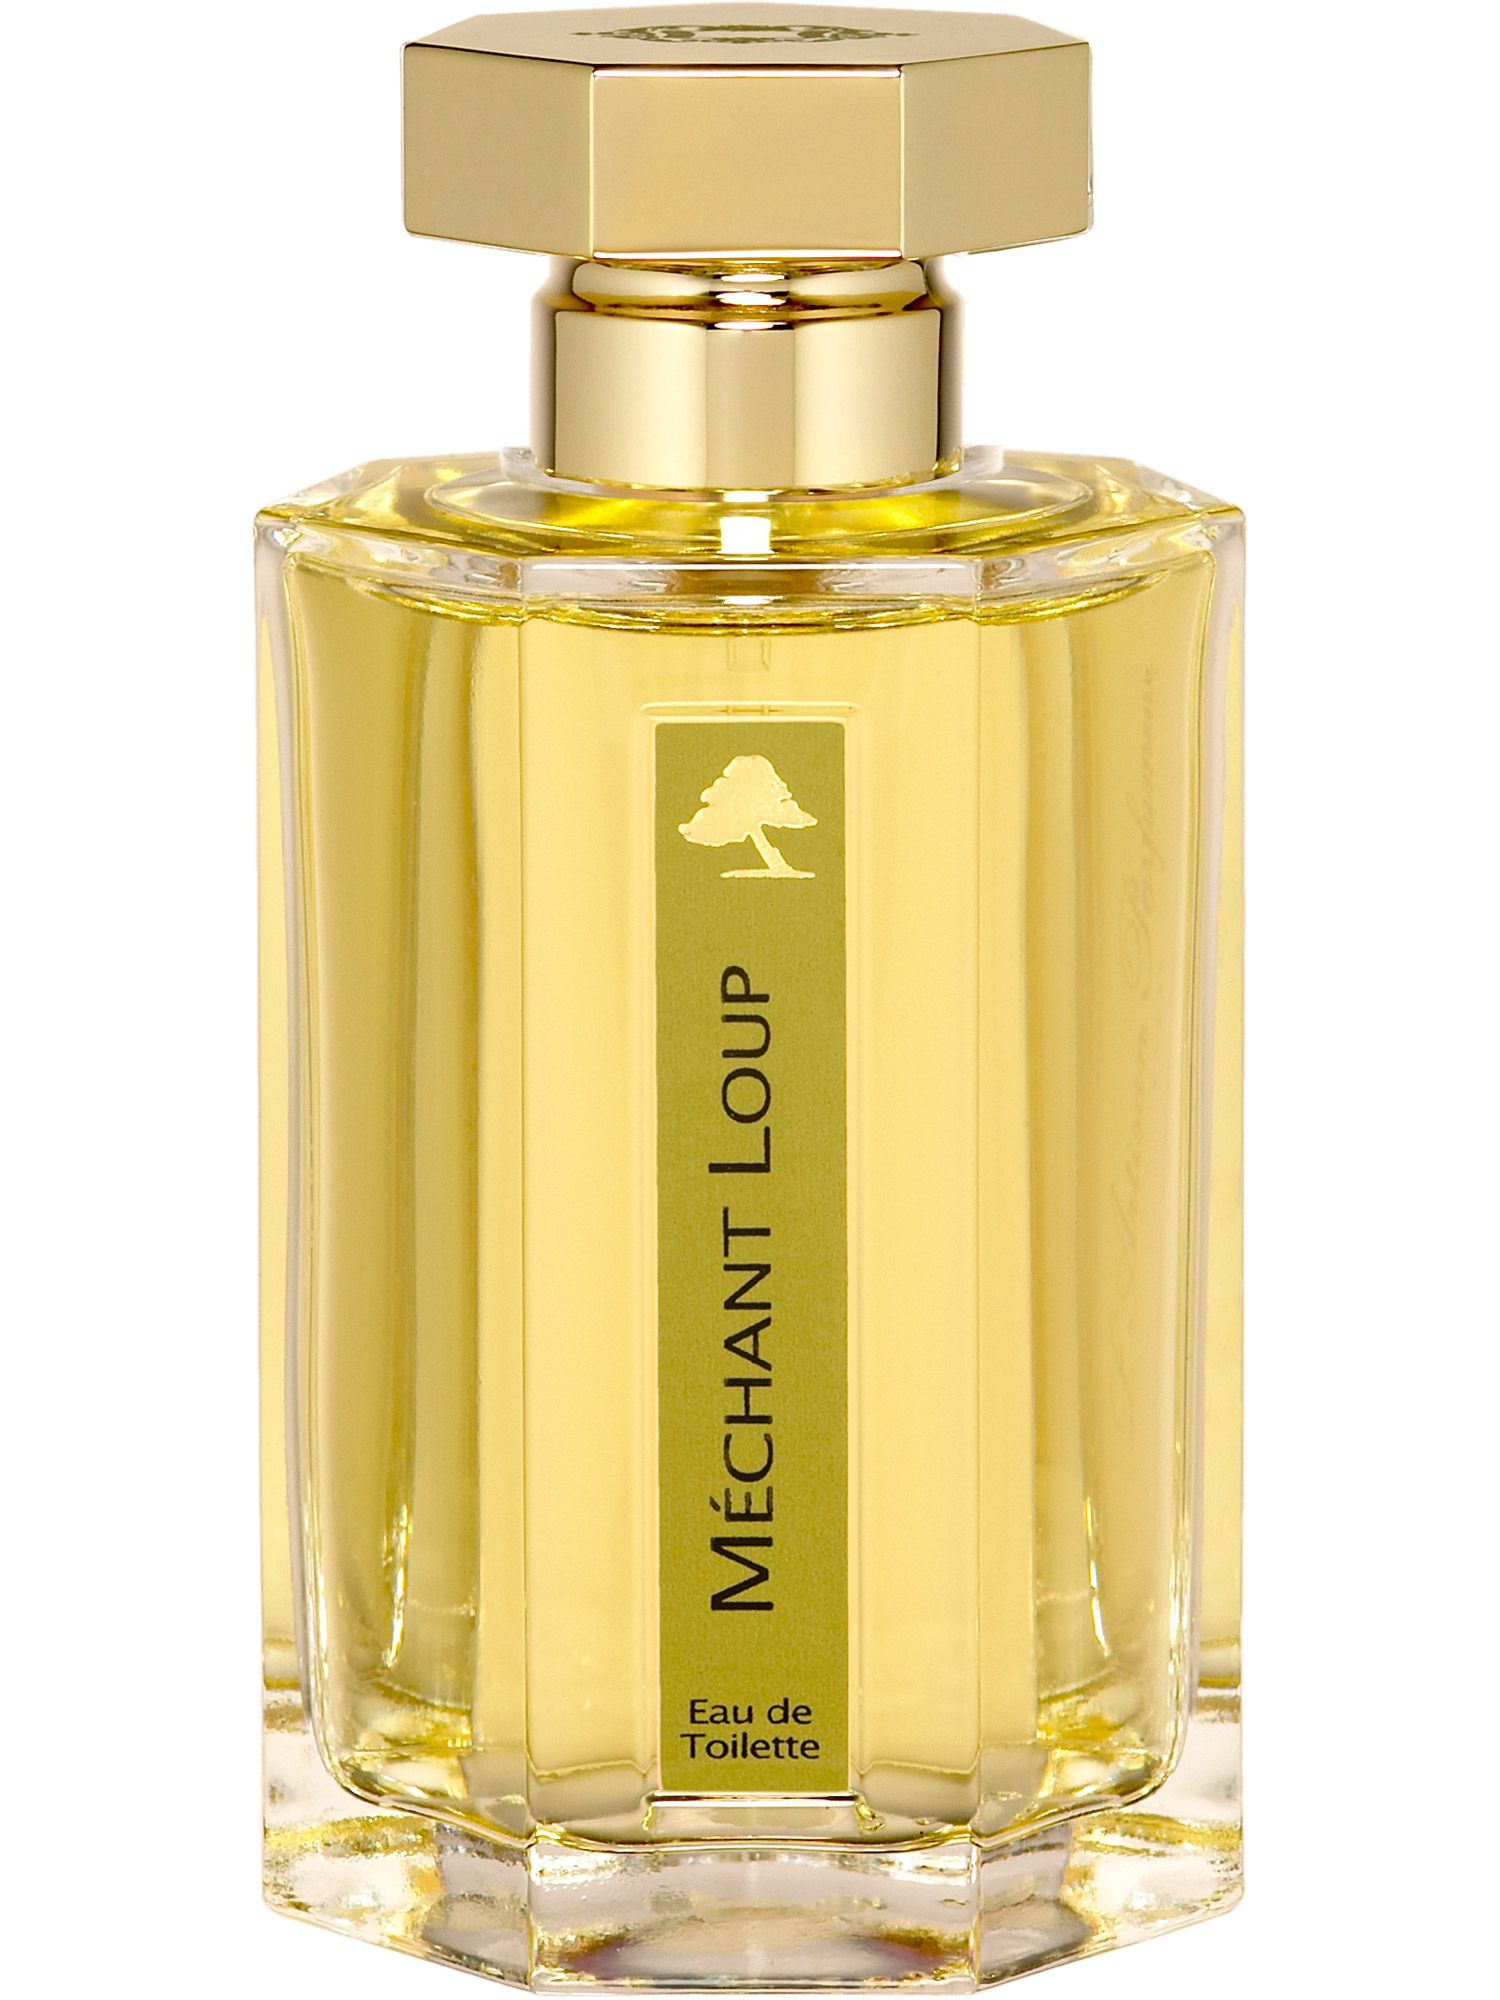 Mechant Loup Eau de Toilette 100ml